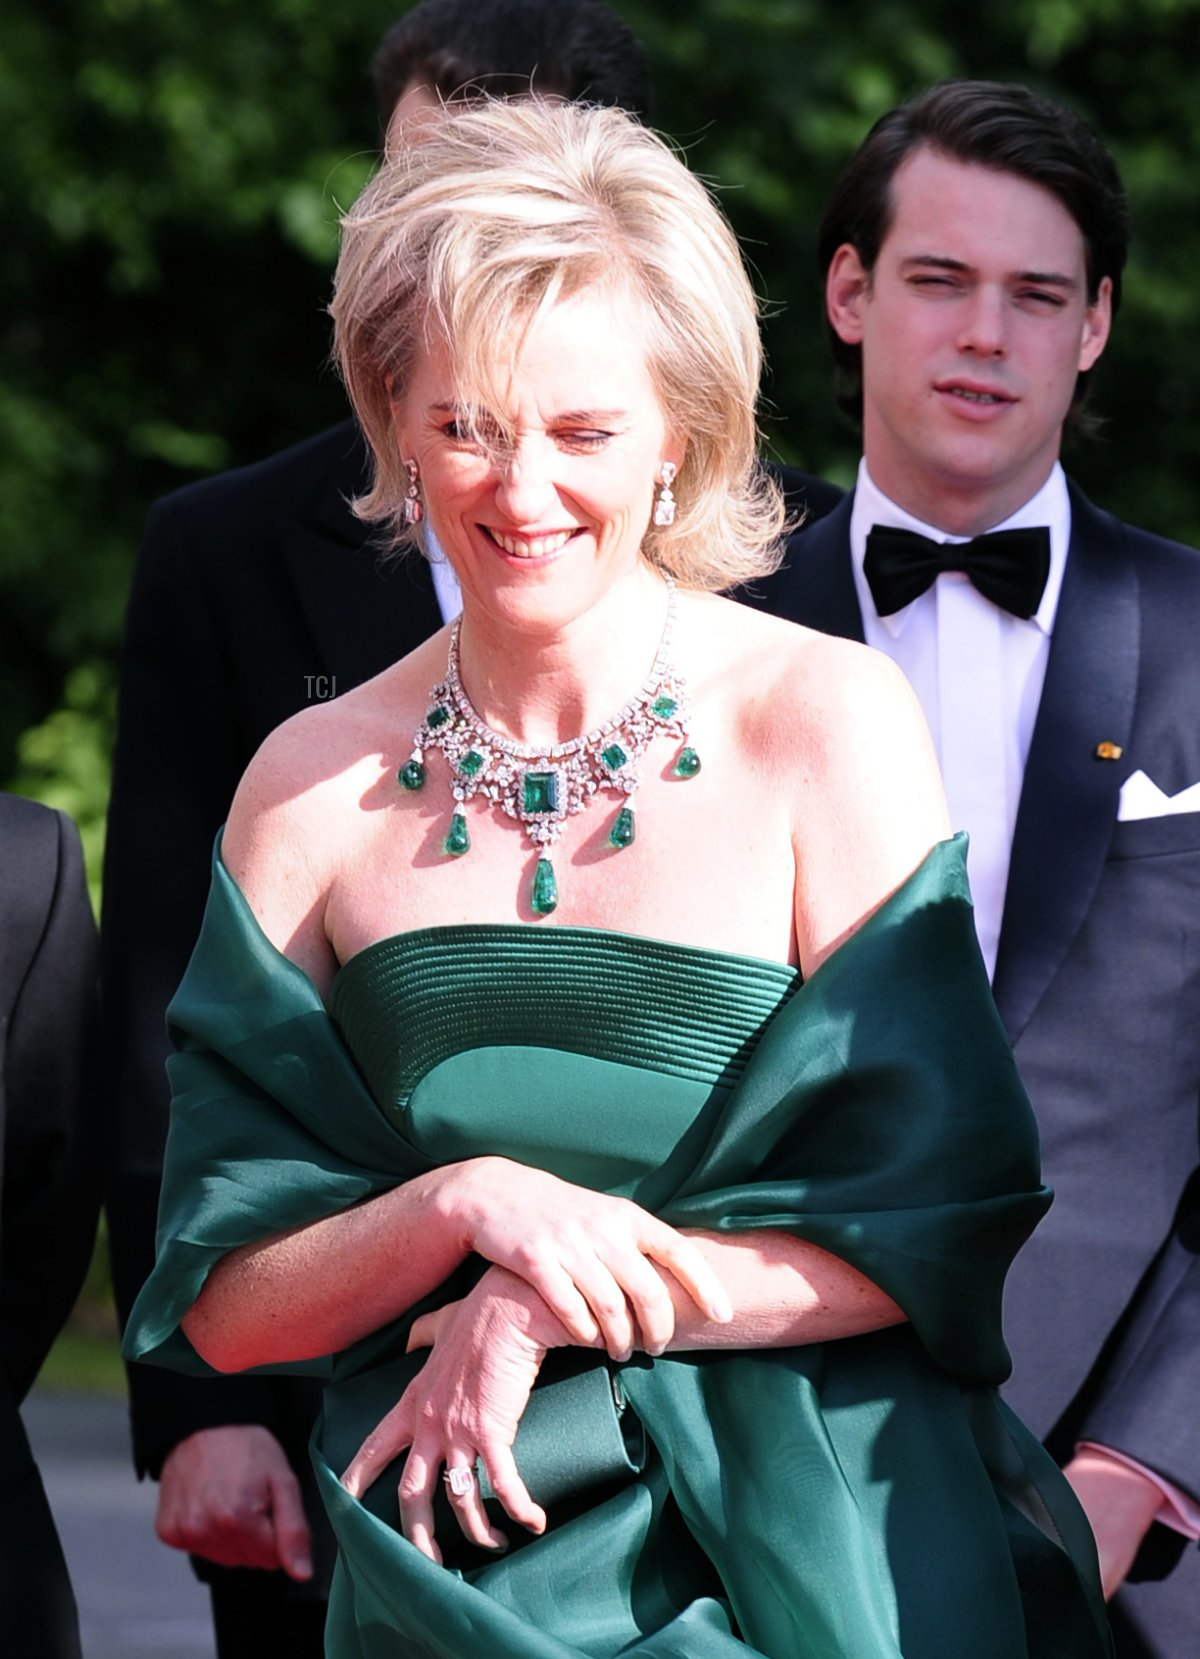 Princess Astrid of Belgium (L) and Japan's Crown Prince Naruhito (R) pose as they arrive at the Eric Ericson Hall of Skeppsholmen in Stockholm on June 18, 2010 prior to a gala dinner presented by the local government